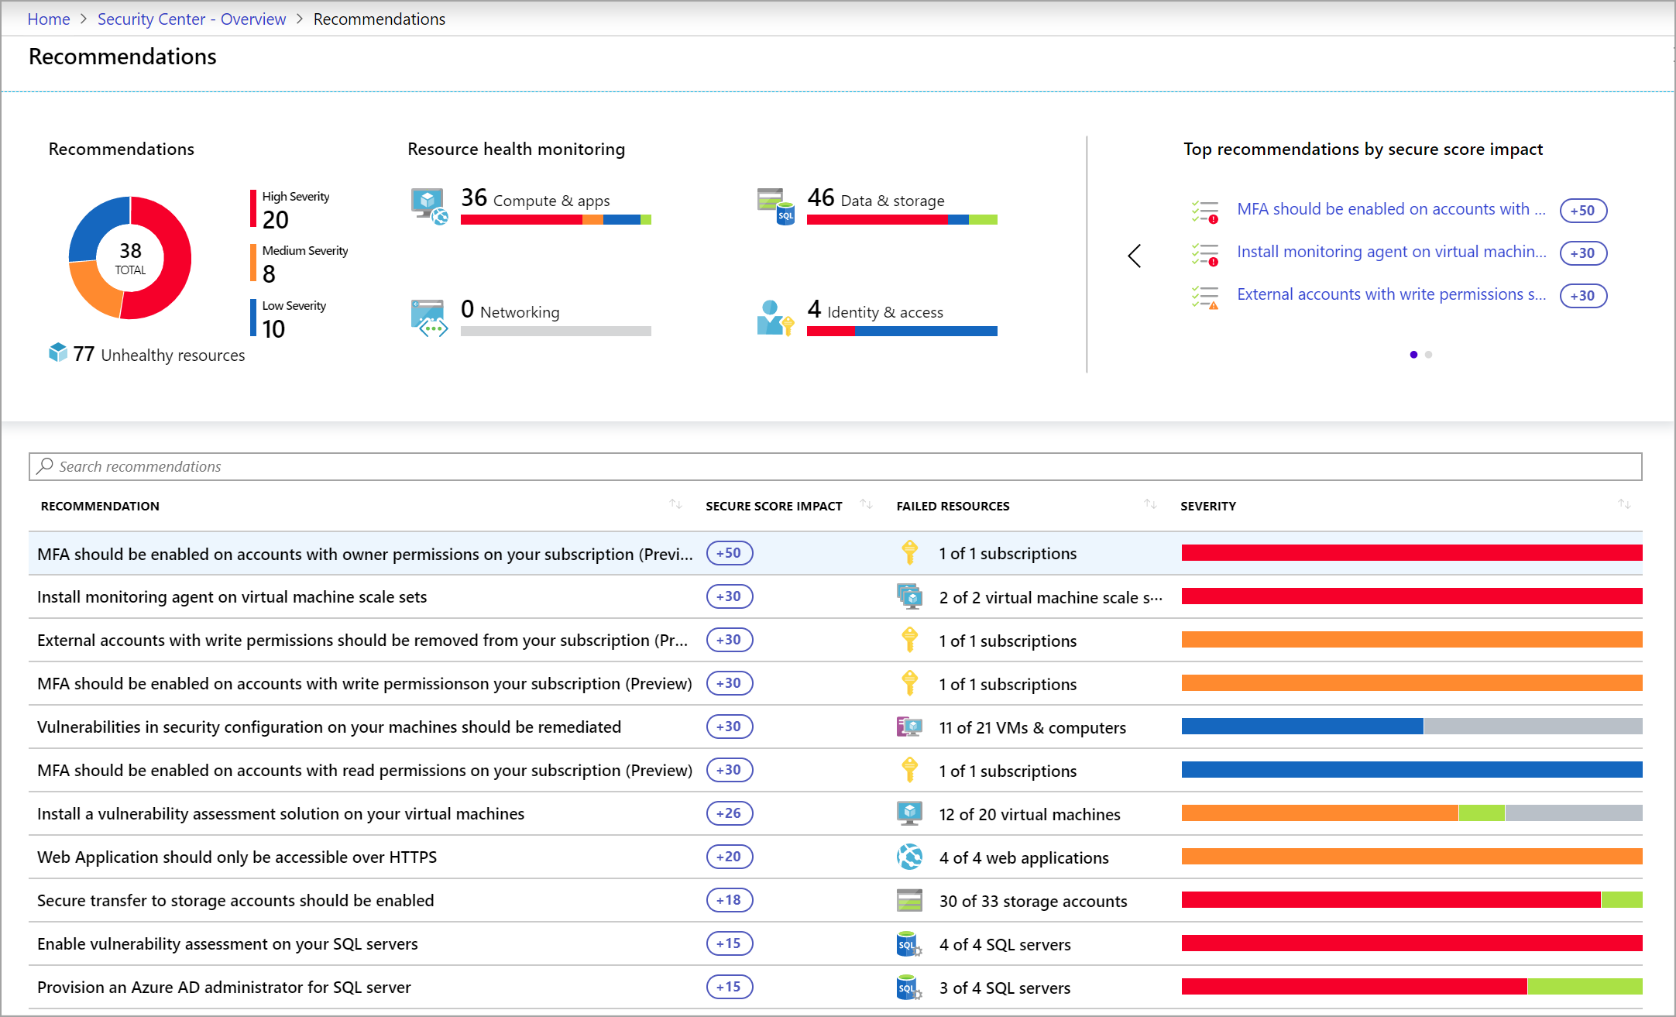 Screenshot of Recommendations in the Azure Security Center.